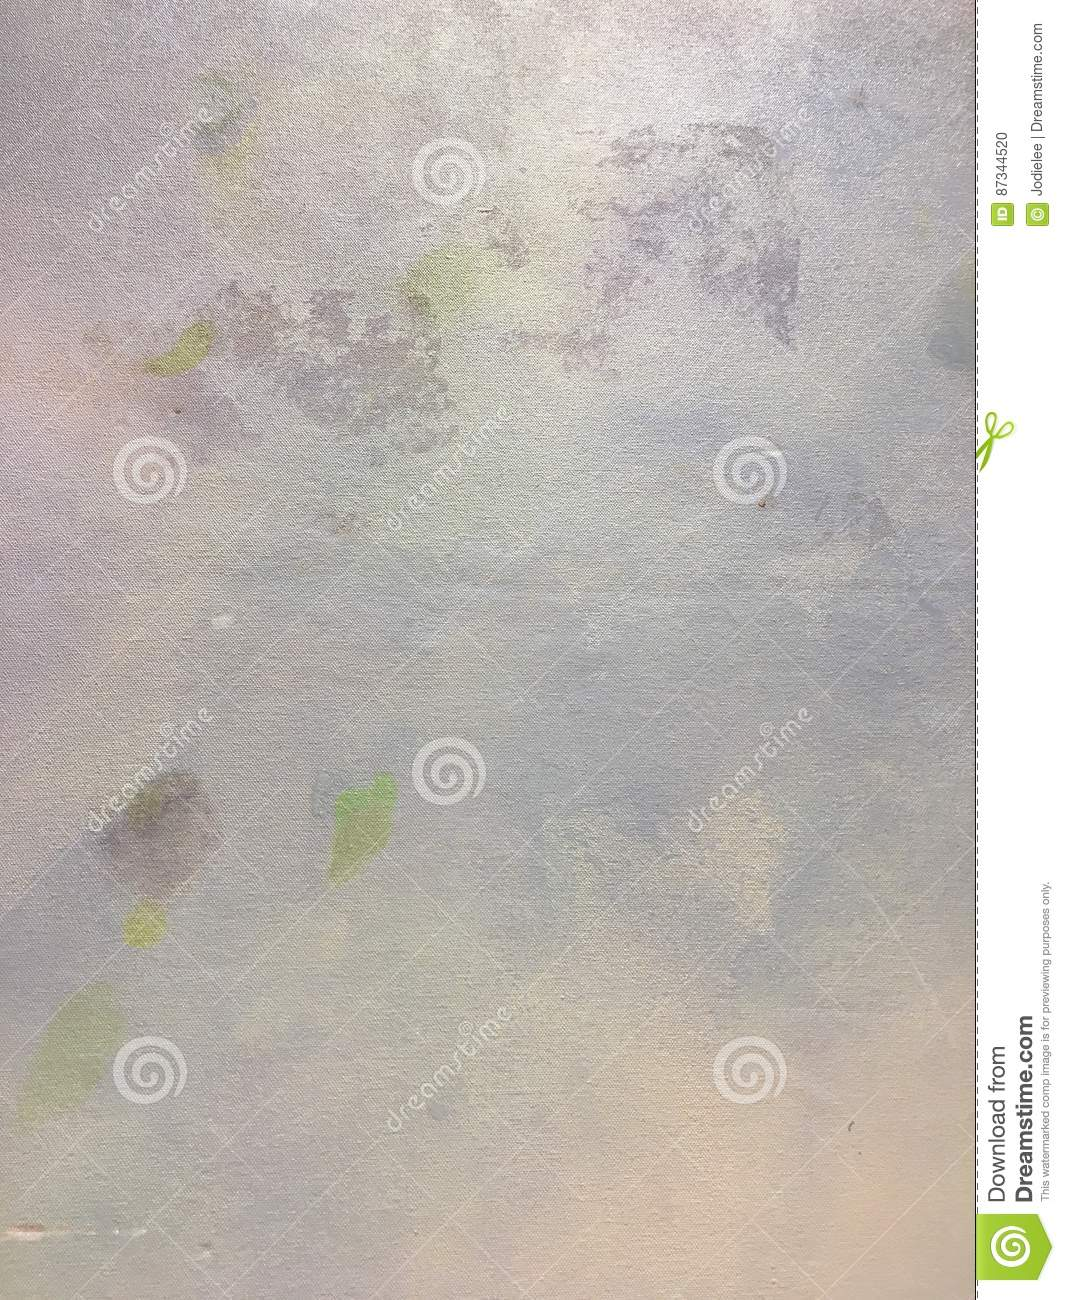 Abstract grungy soft purple and grey pastel painted background